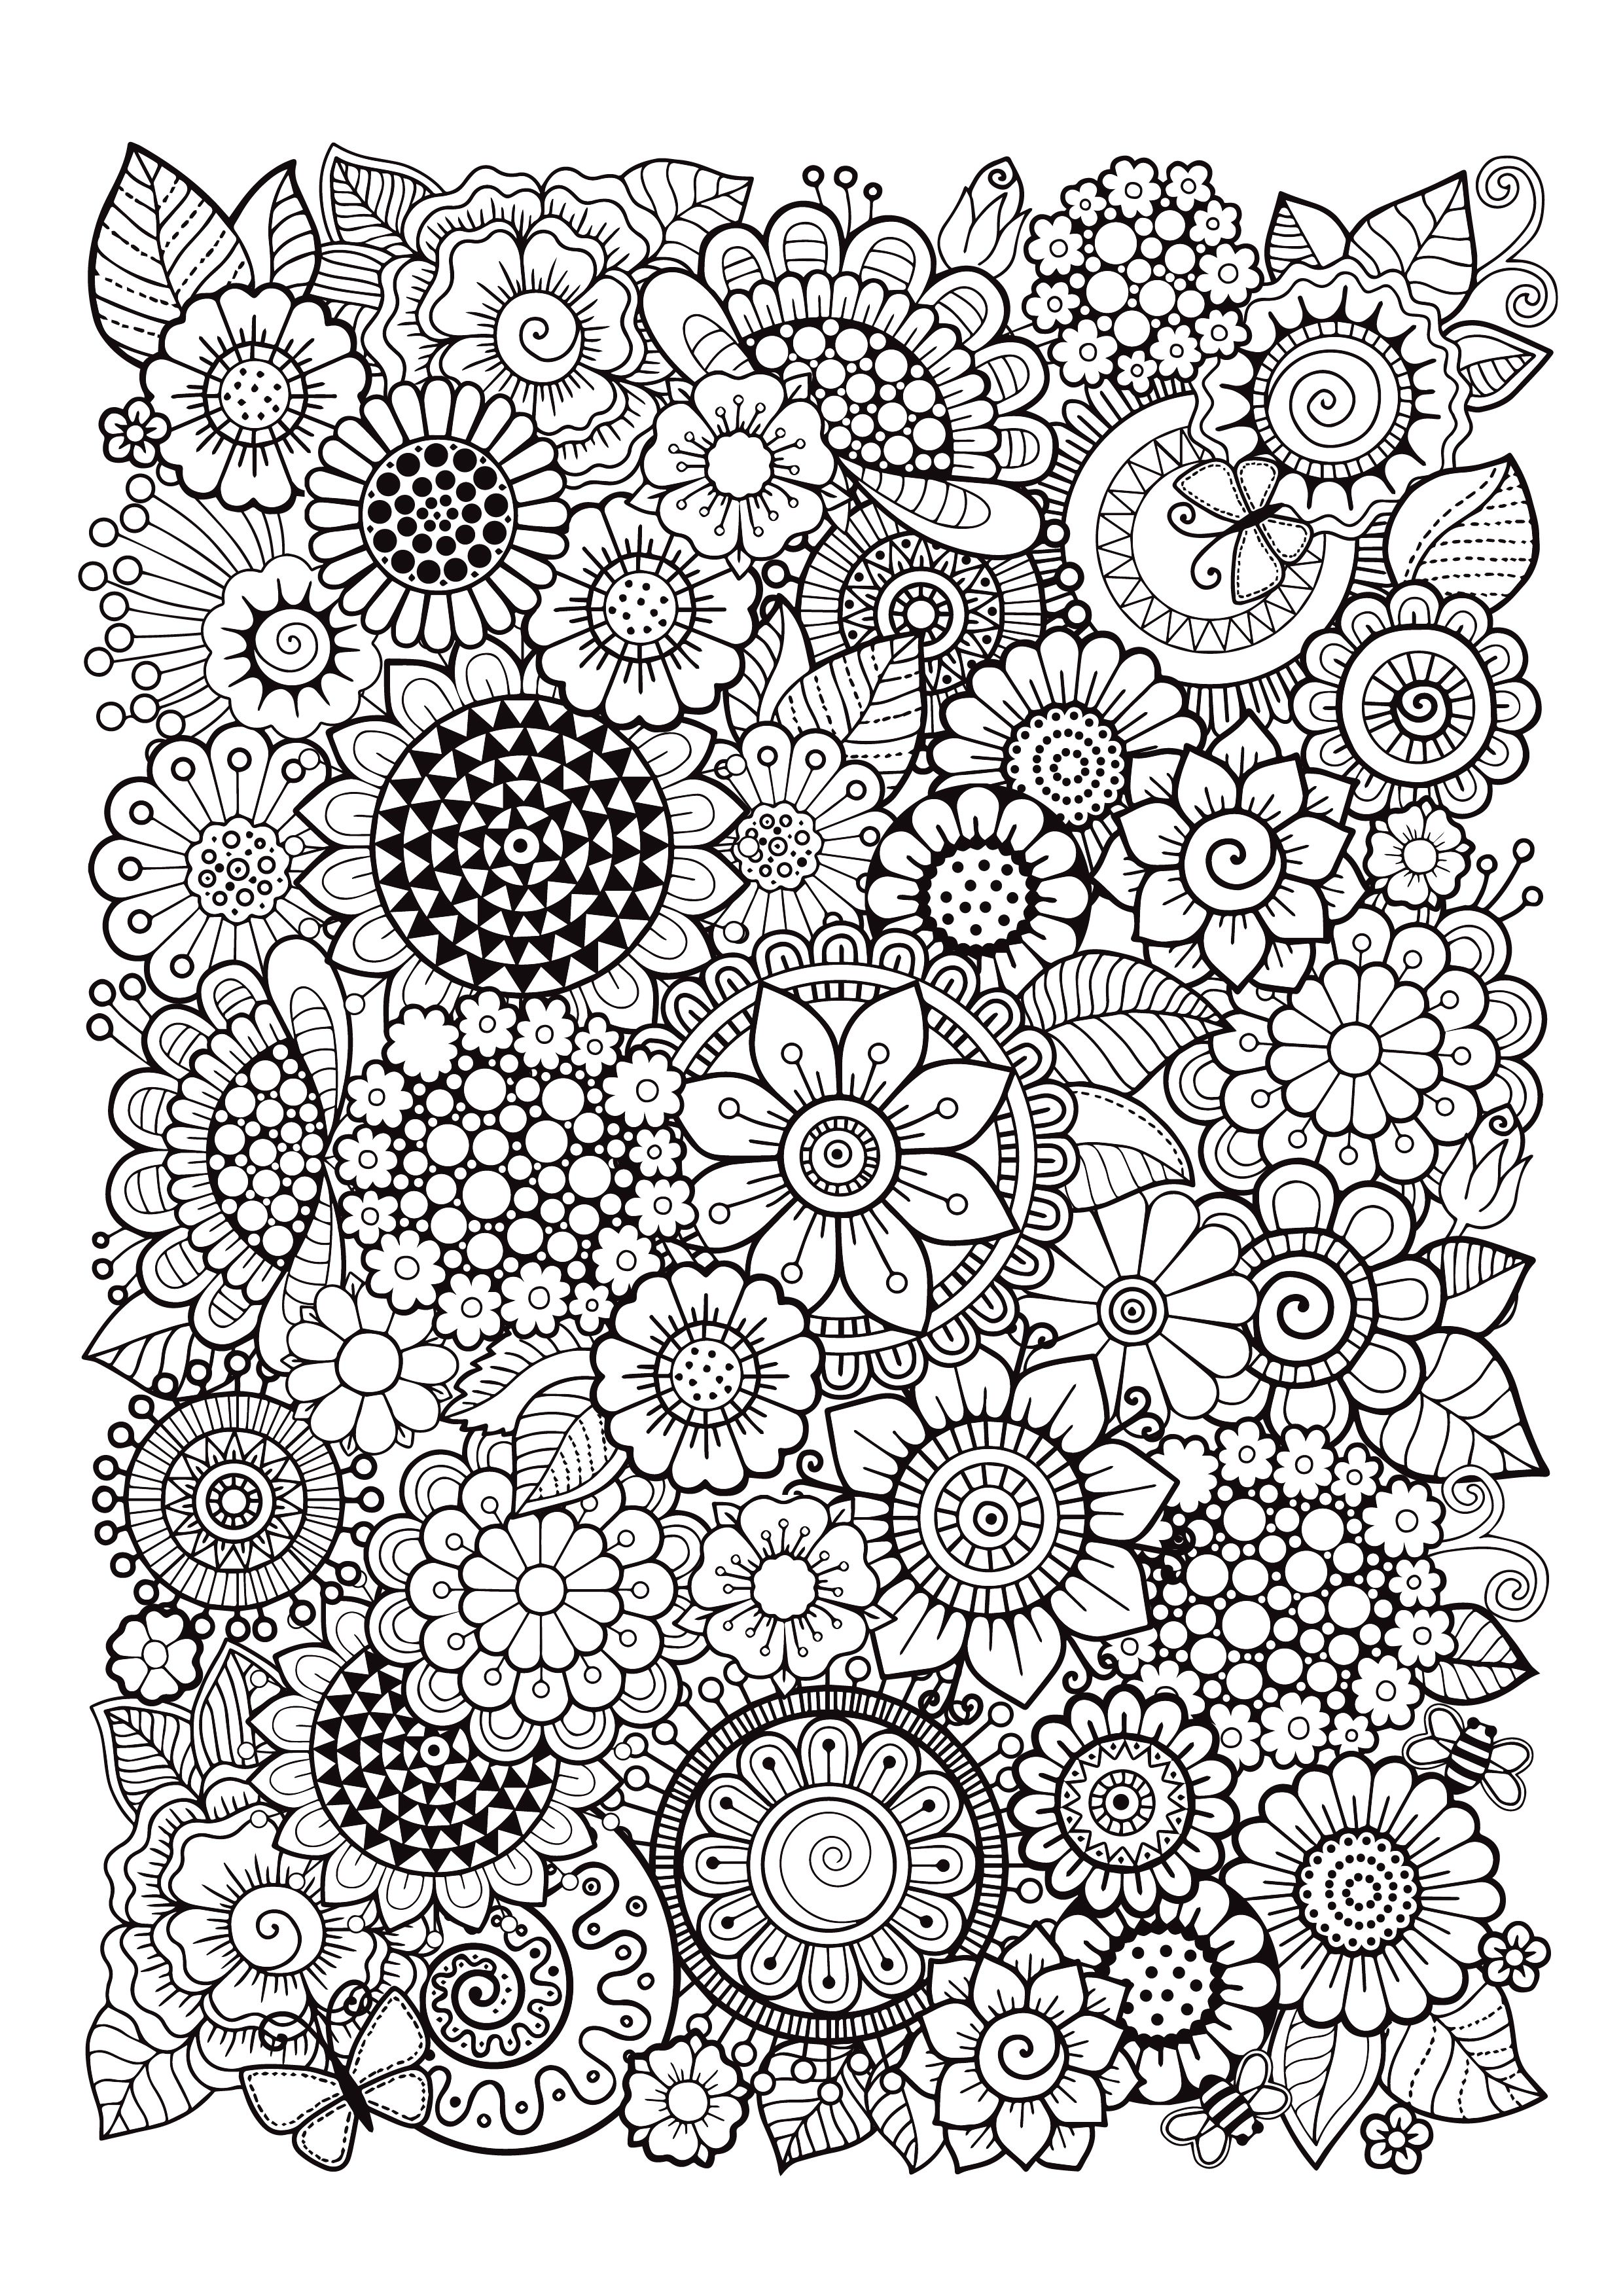 Mindfulness Coloring Mindfulness Colouring Pattern Coloring Pages Coloring Pages